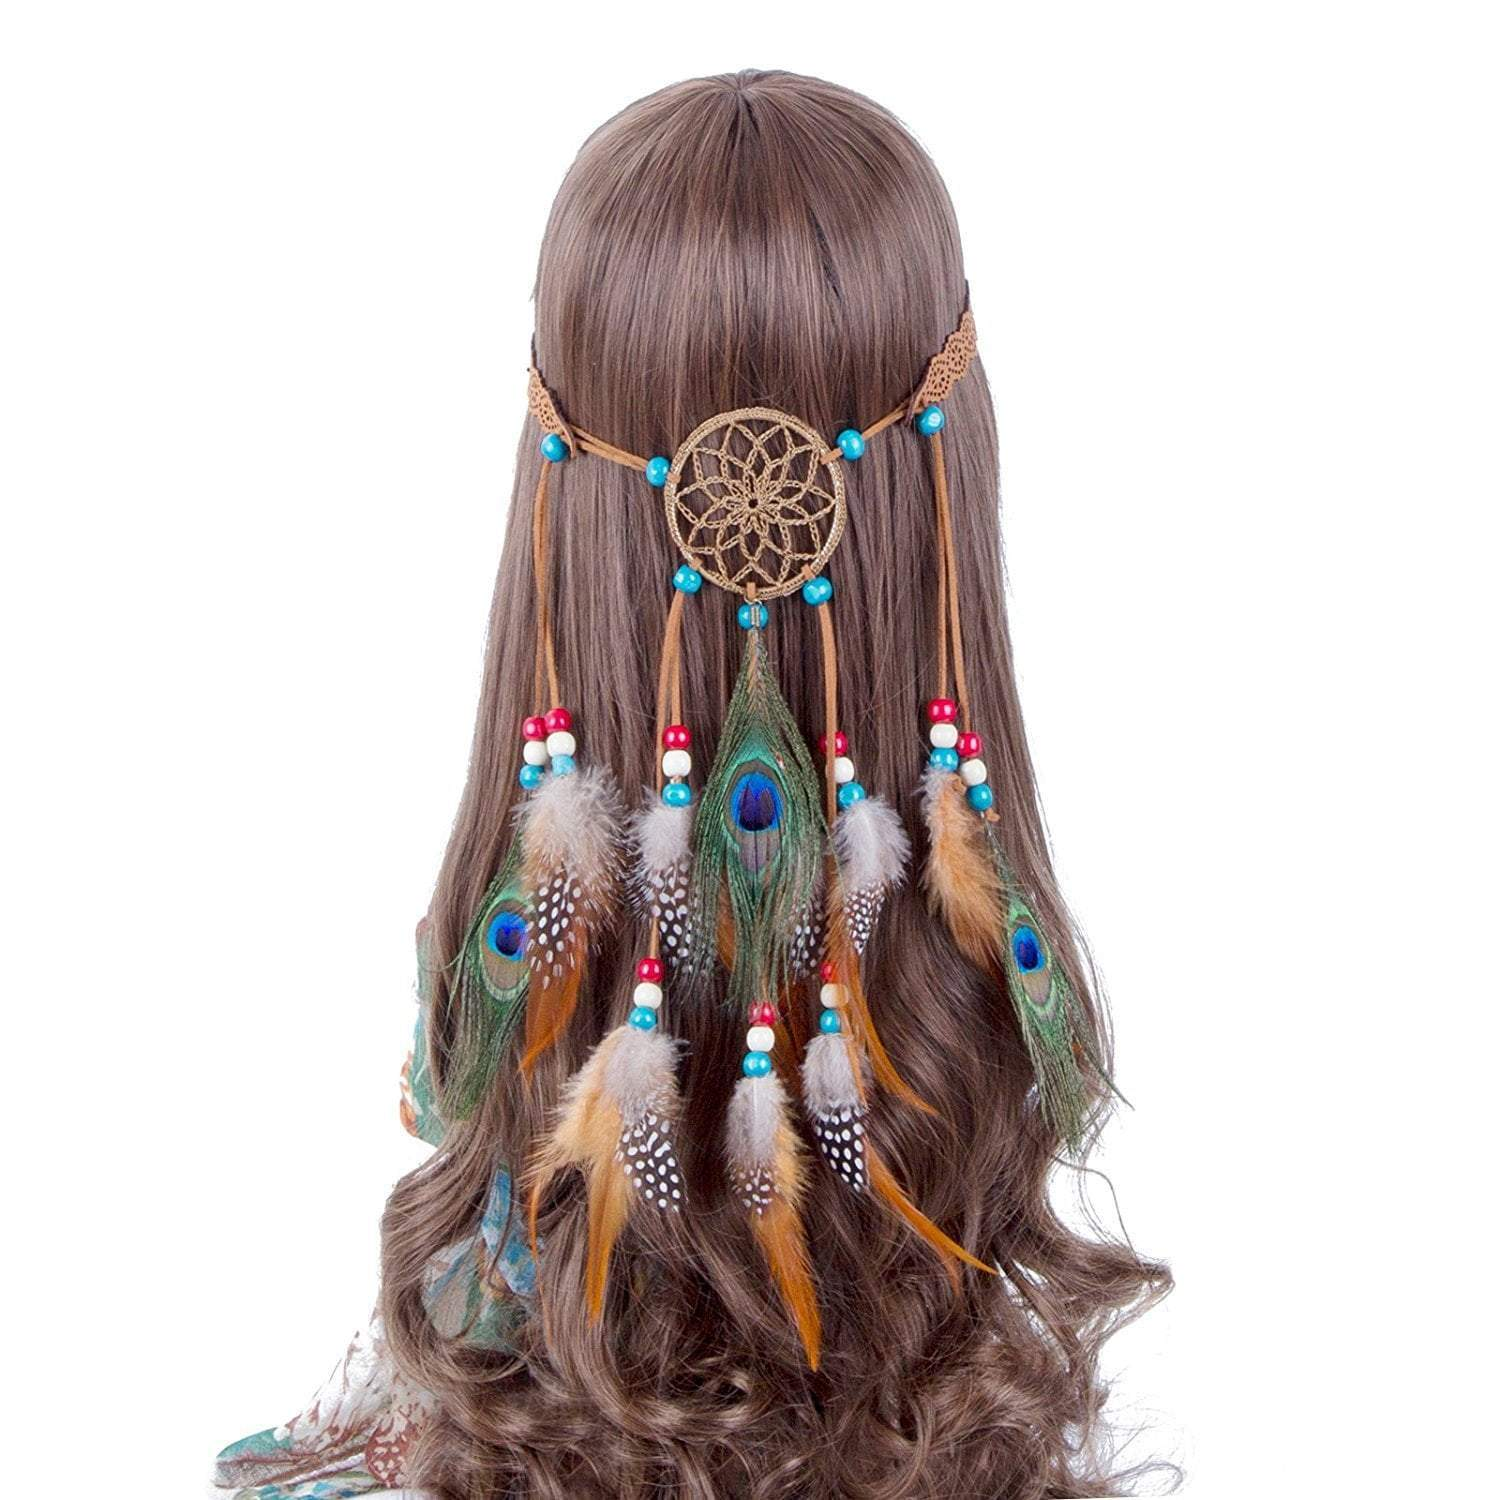 Native American Dream Catcher Tiara